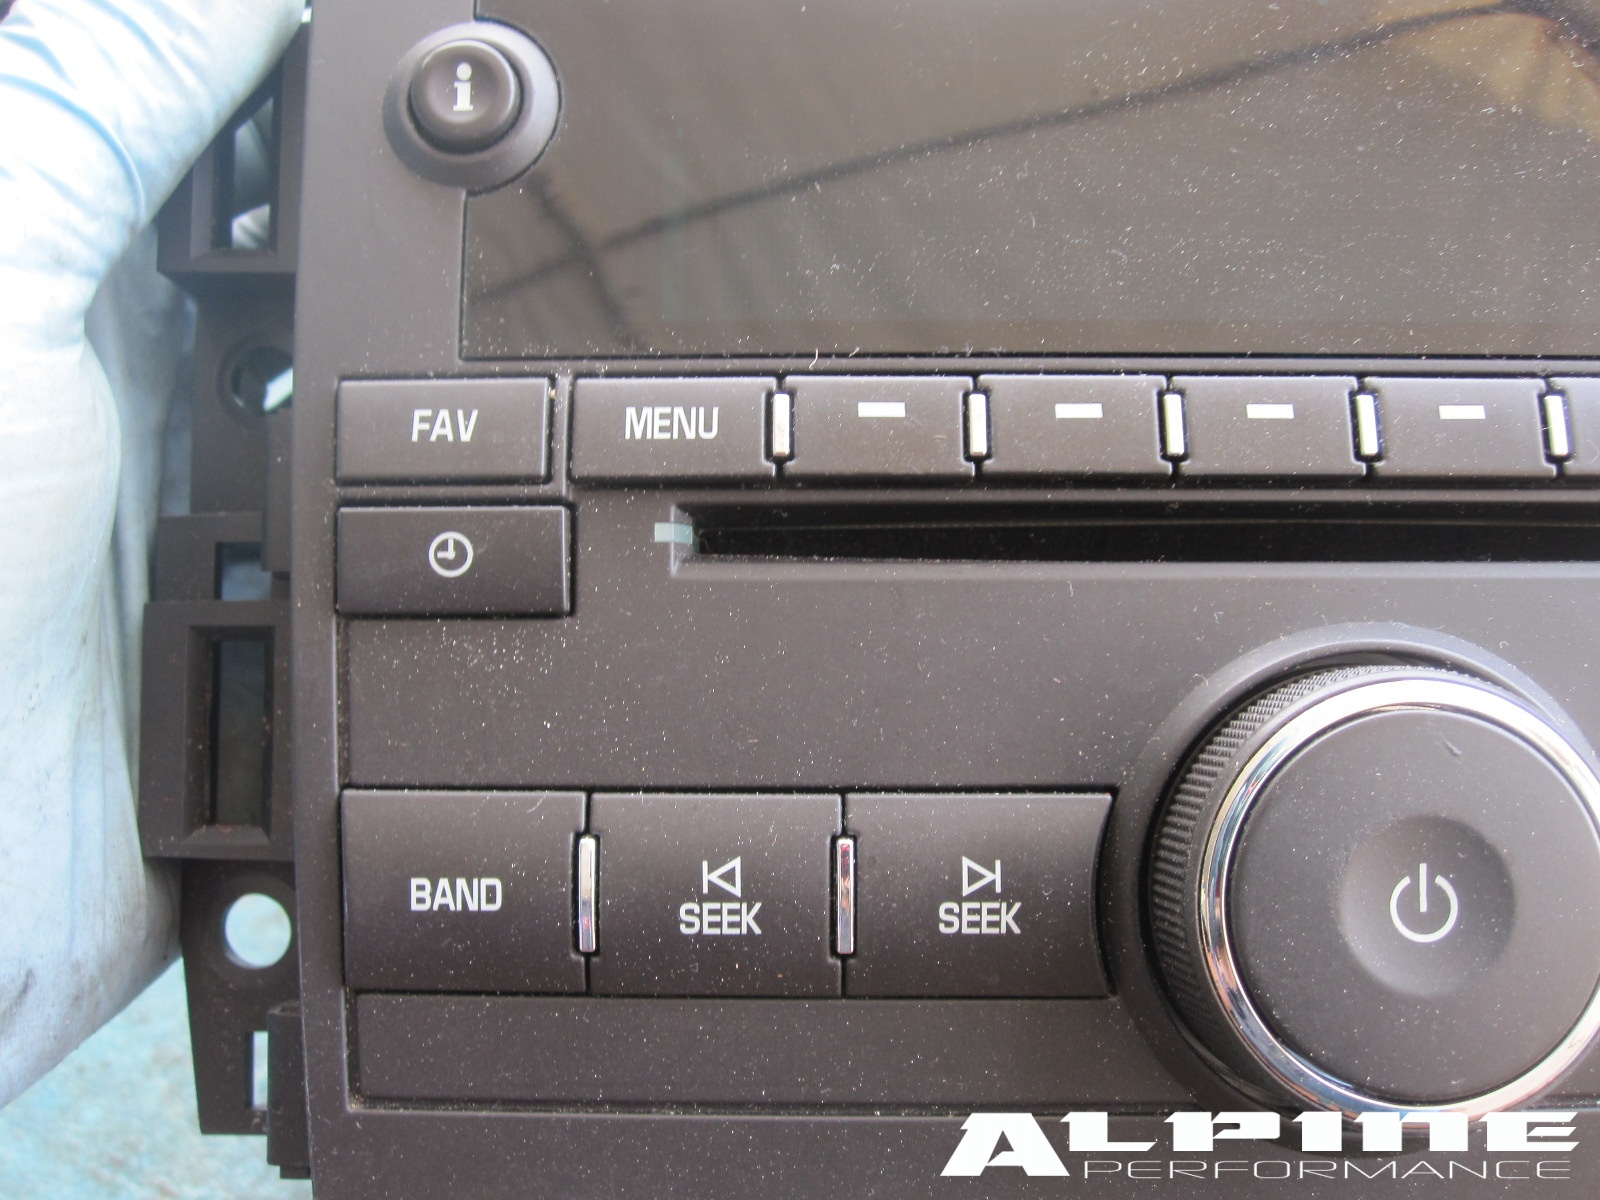 2011 Chevy Tahoe For Sale >> Origianal Chevy Tahoe Suburban Avalanche GMC Sierra YUKON OEM Radio MP3 AUX CD Player - OEM parts